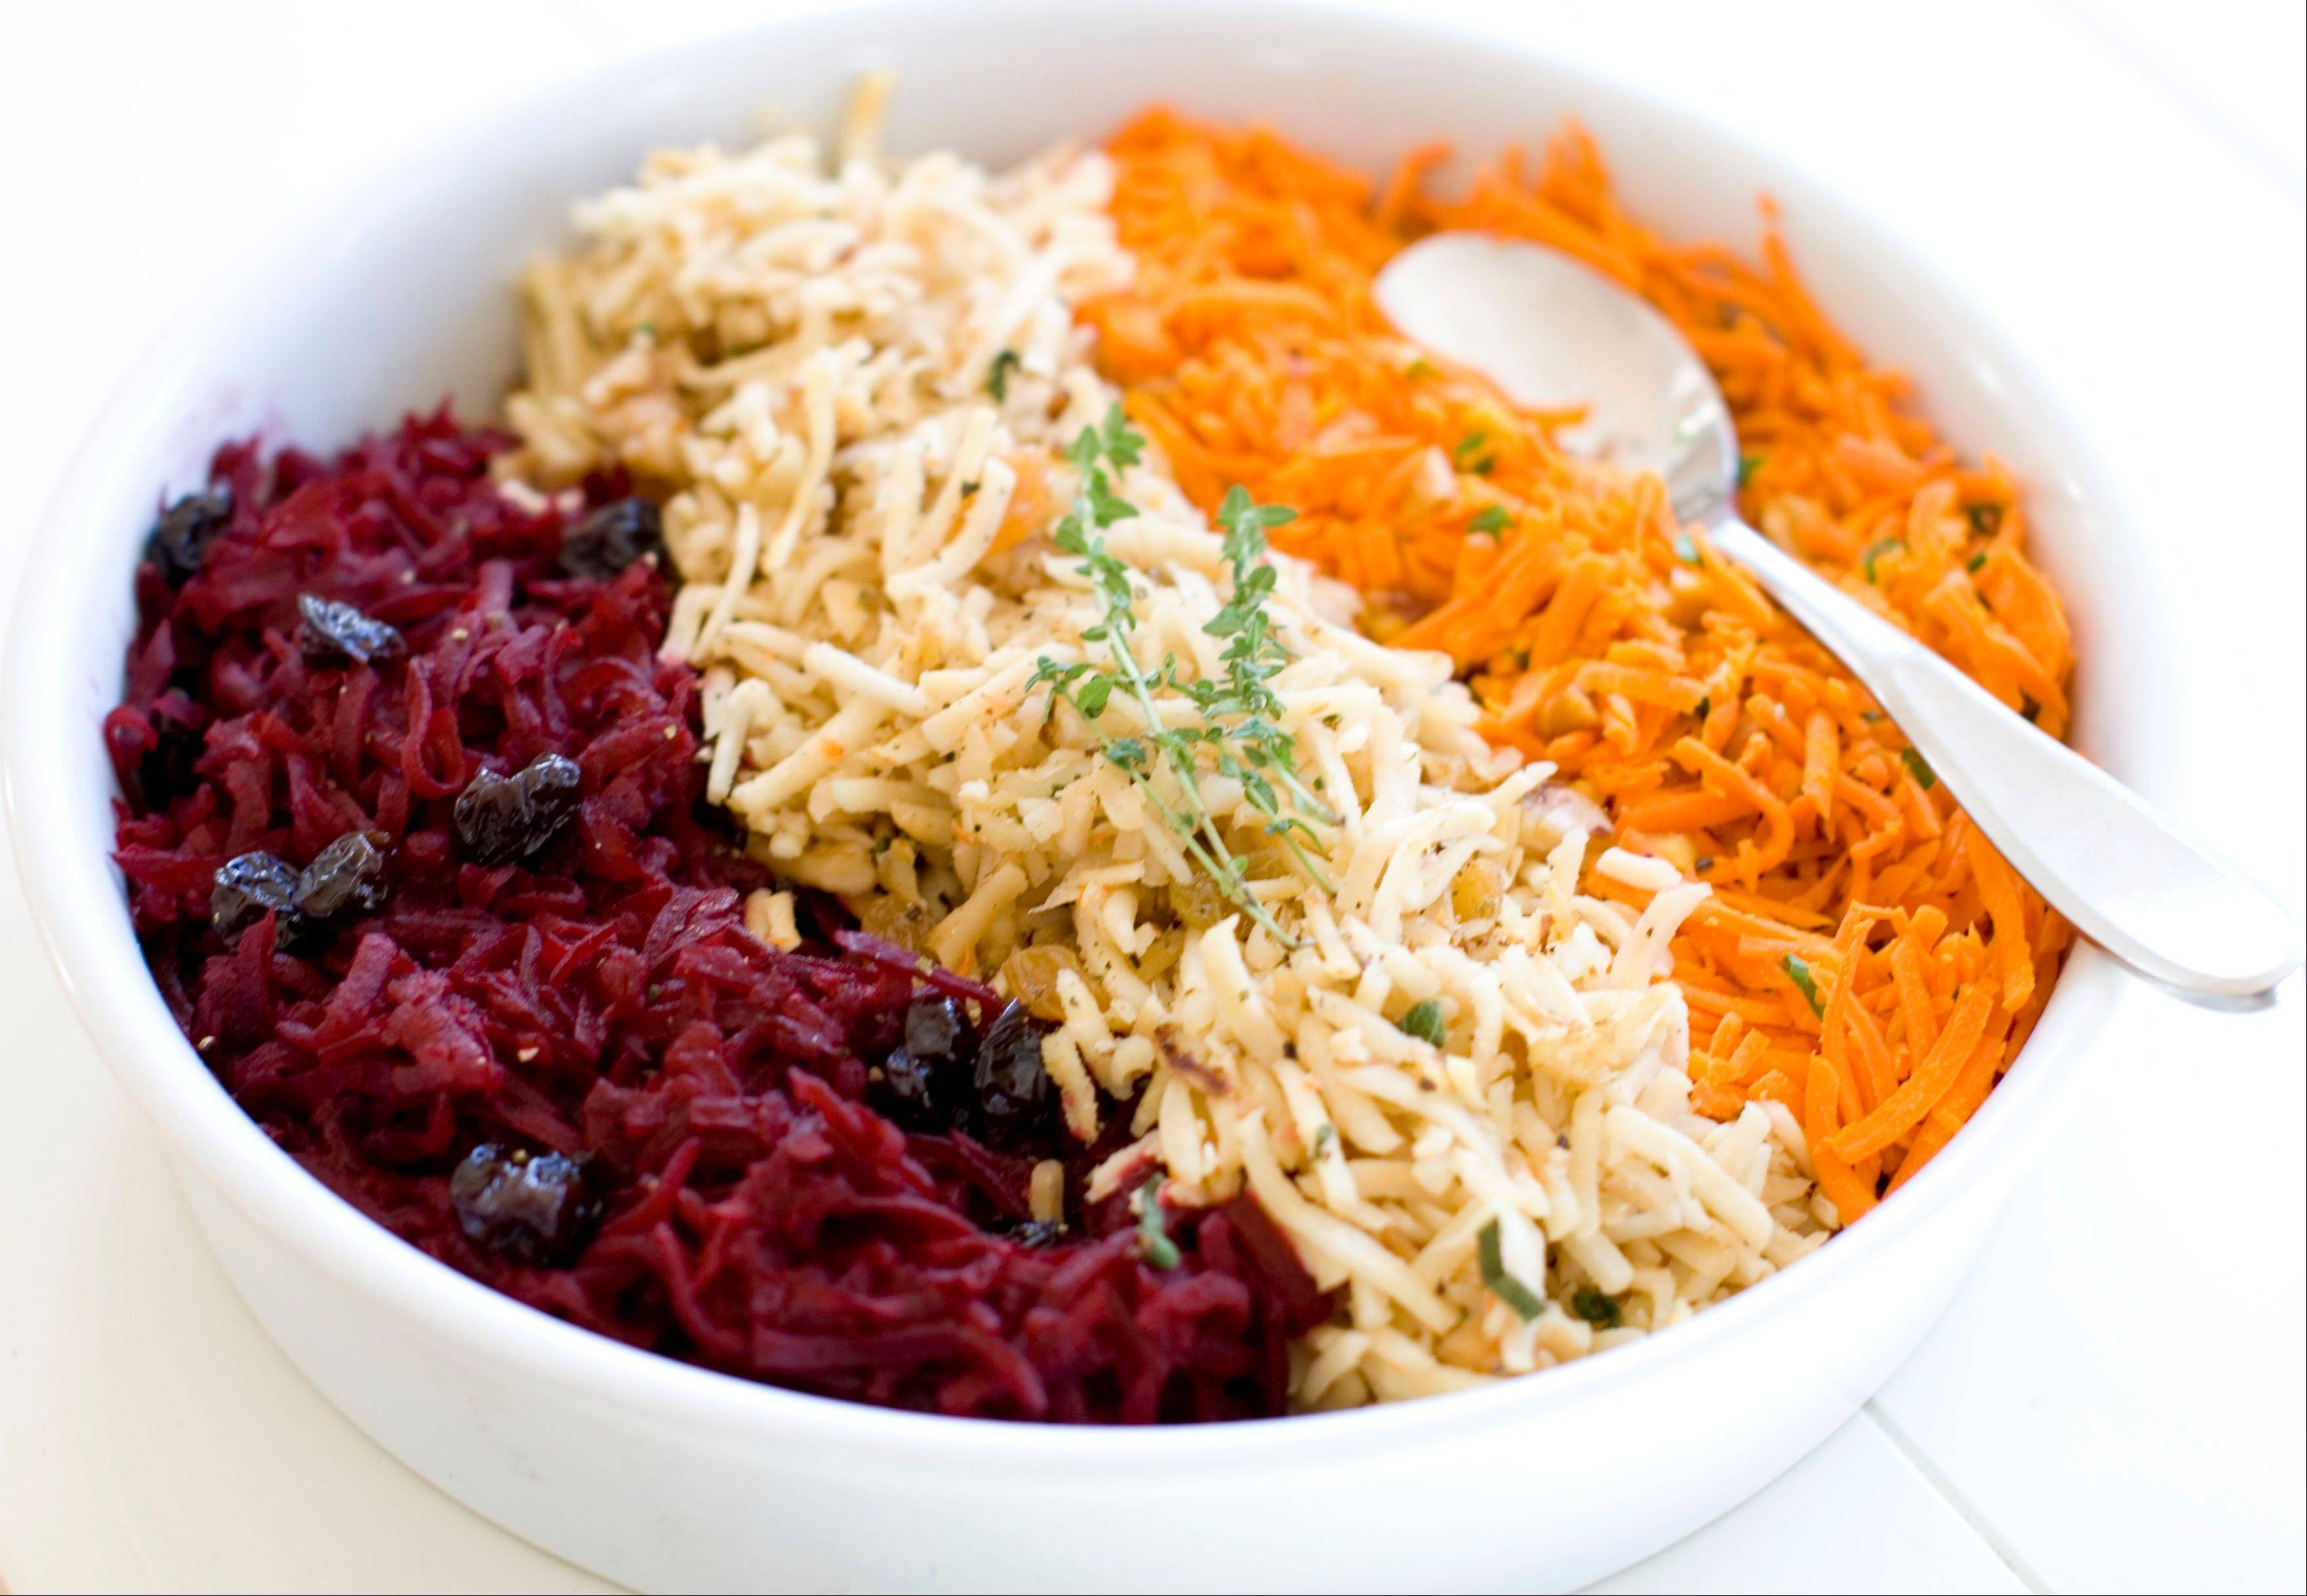 A food processor makes quick work of a trio of sides: shredded beets with balsamic, from left, shredded parsnips with walnuts and shredded spicy carrots.